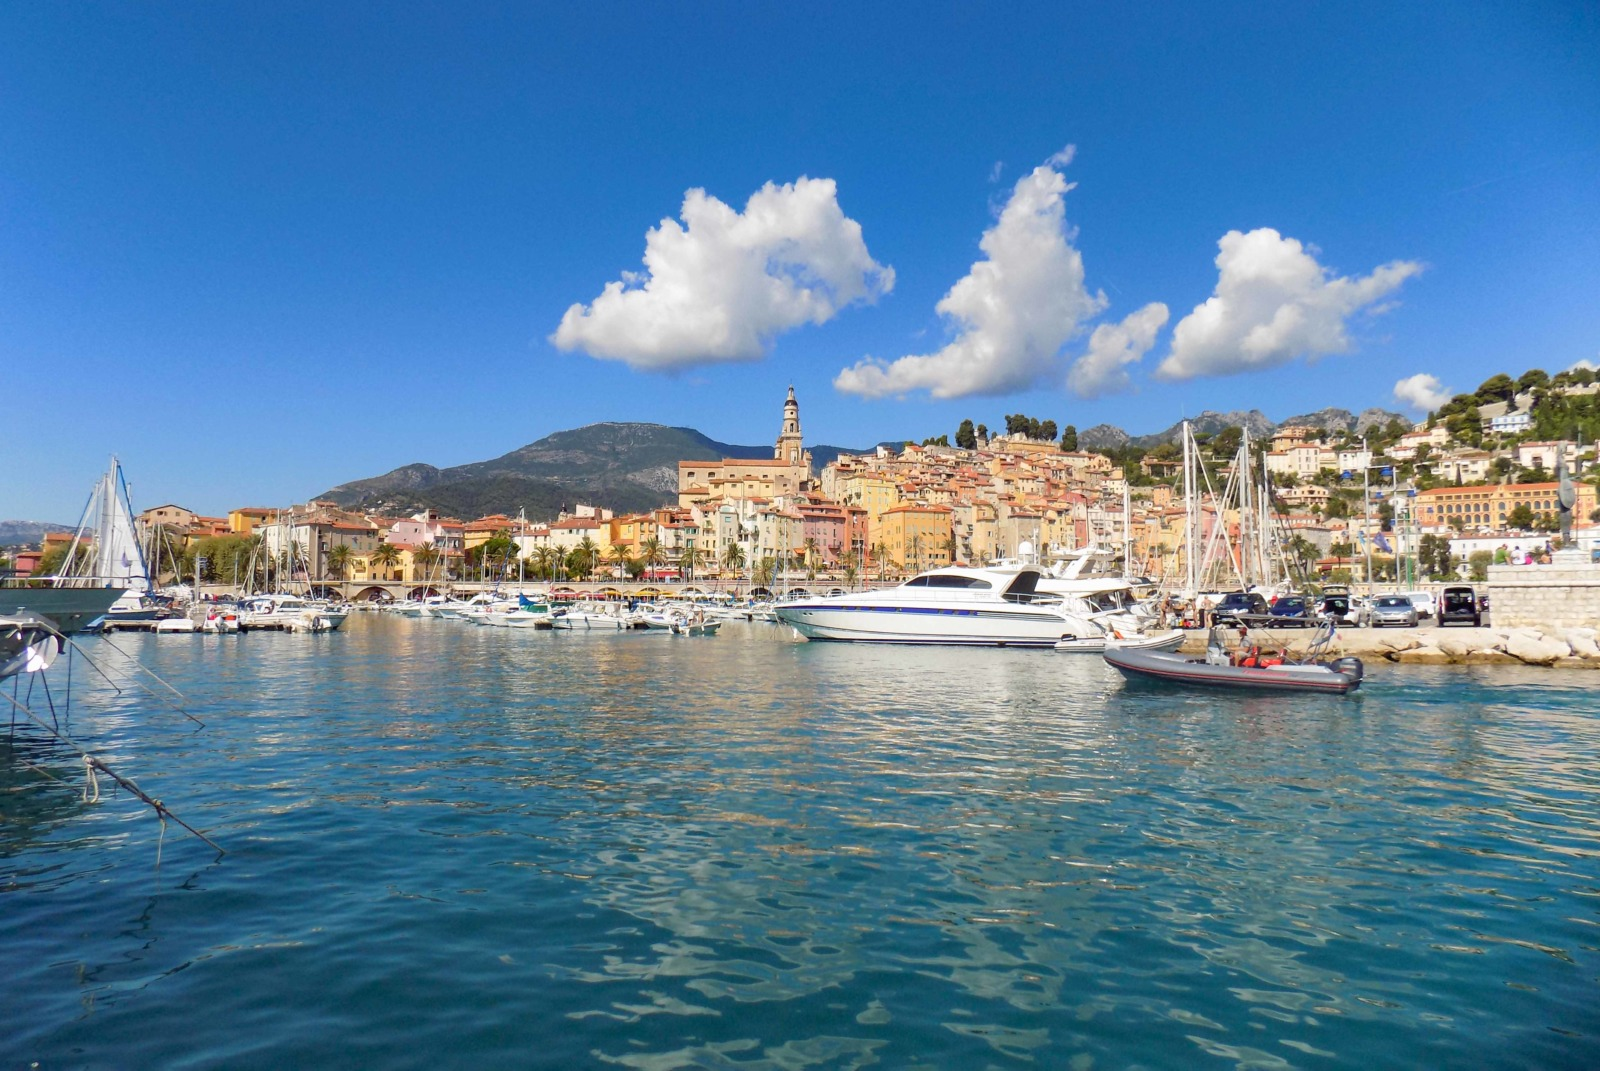 Menton © Claire2595 - licence [CC BY-SA 3.0] from Wikimedia Commons